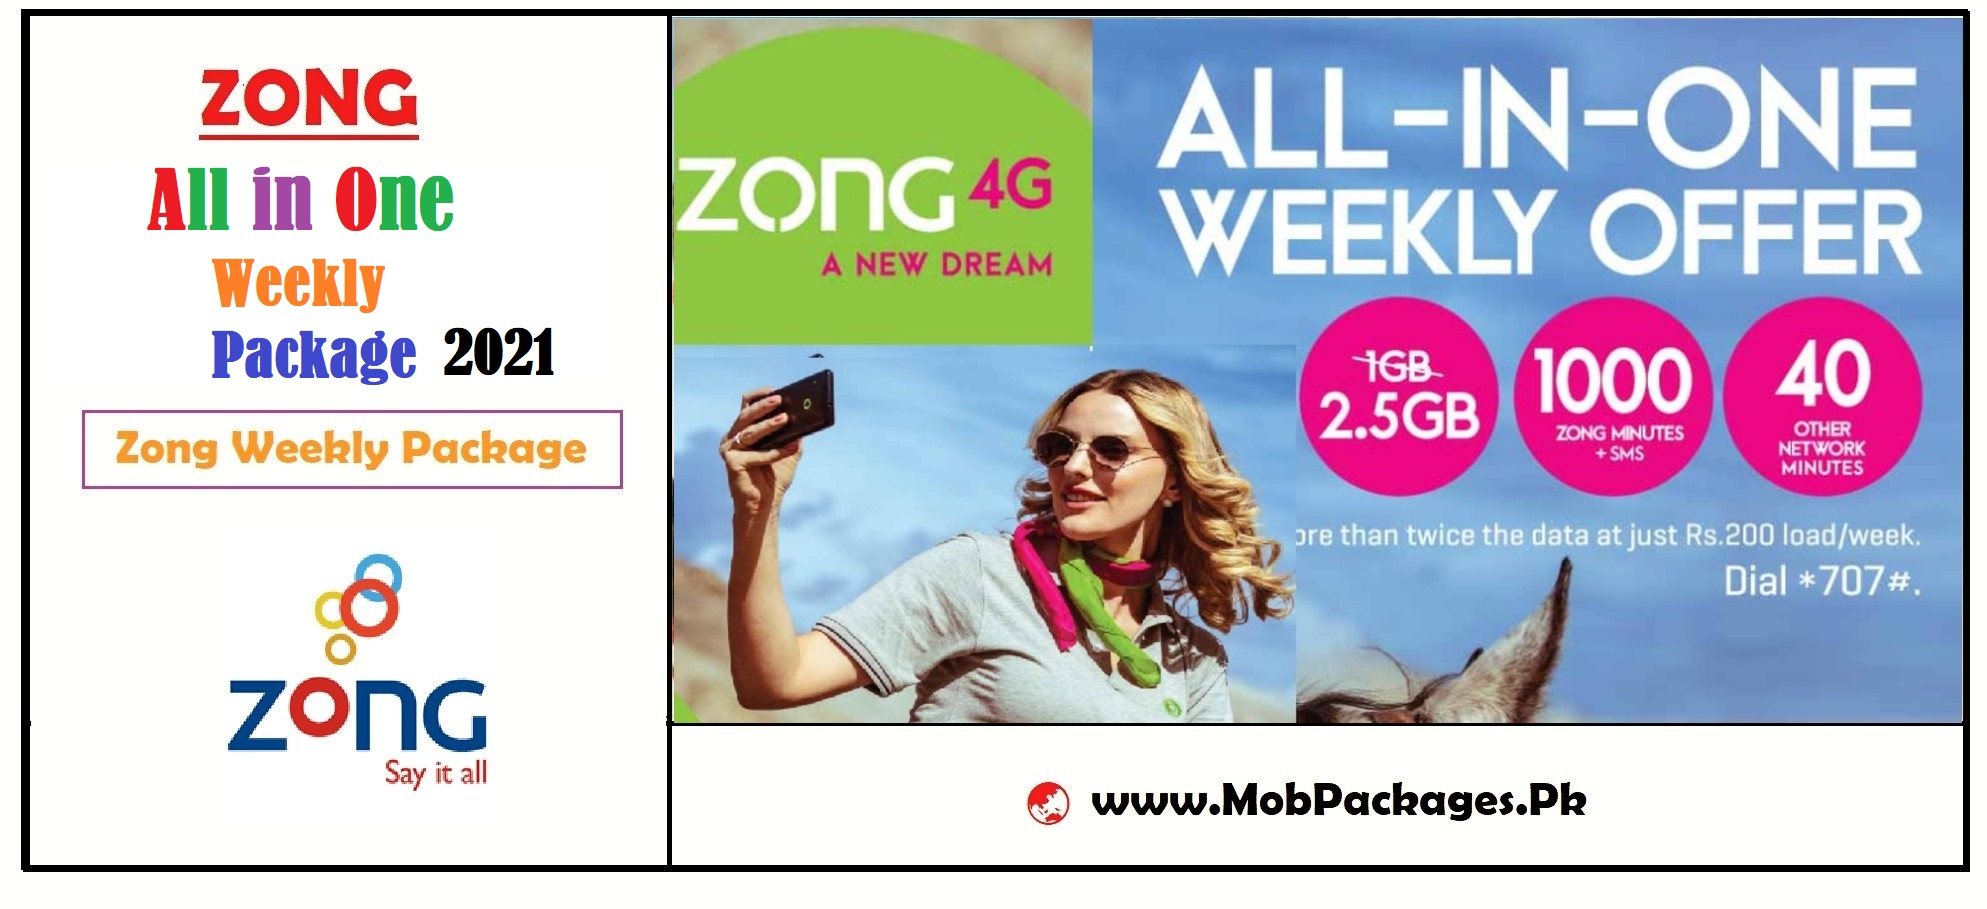 Zong All in One Weekly Package 2021